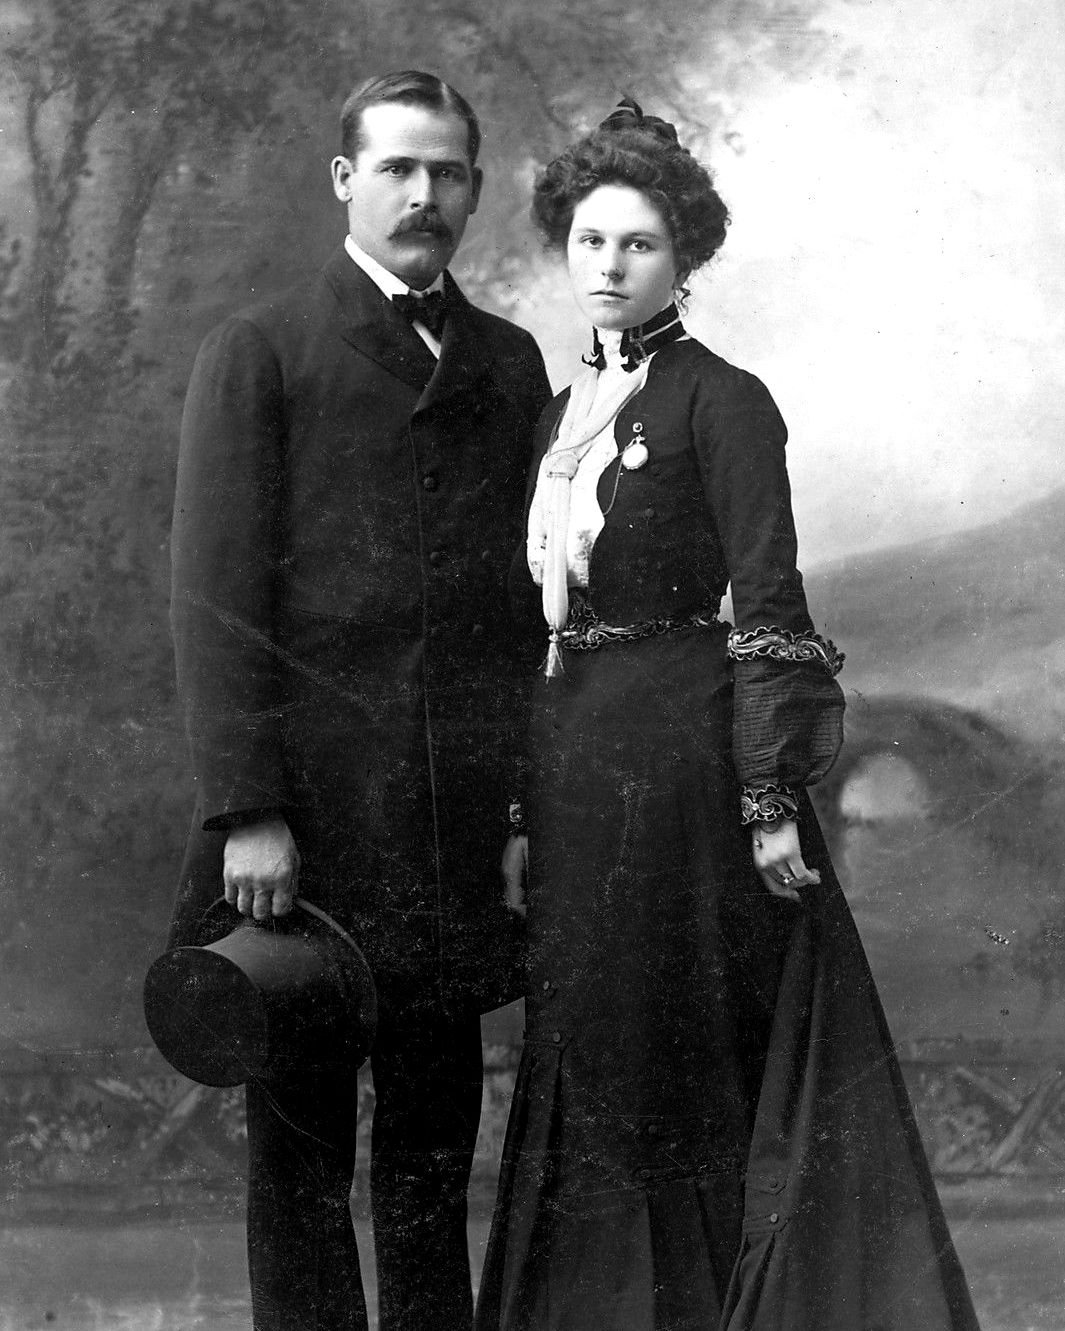 HARRY LONGABAUGH (a.k.a. THE SUNDANCE KID) AND ETTA PLACE - 8X10 PHOTO (ZY-457)